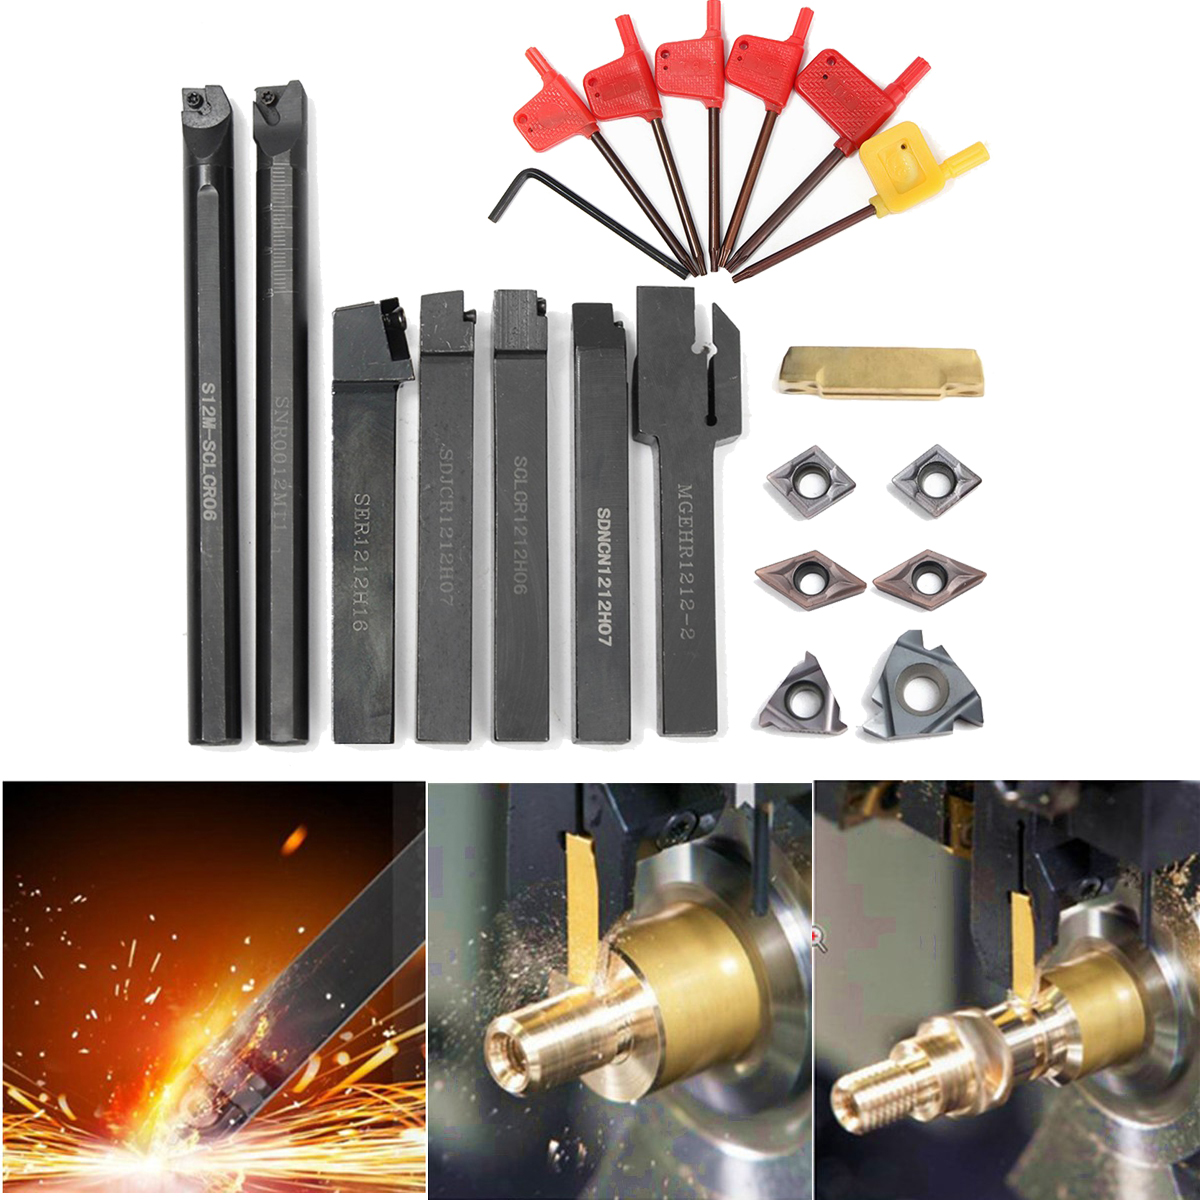 12MM Lathe Turning Tool Holder Boring Bar+ 7 pcs Carbide Inserts + Wrench For Lathe Turning Tool цены